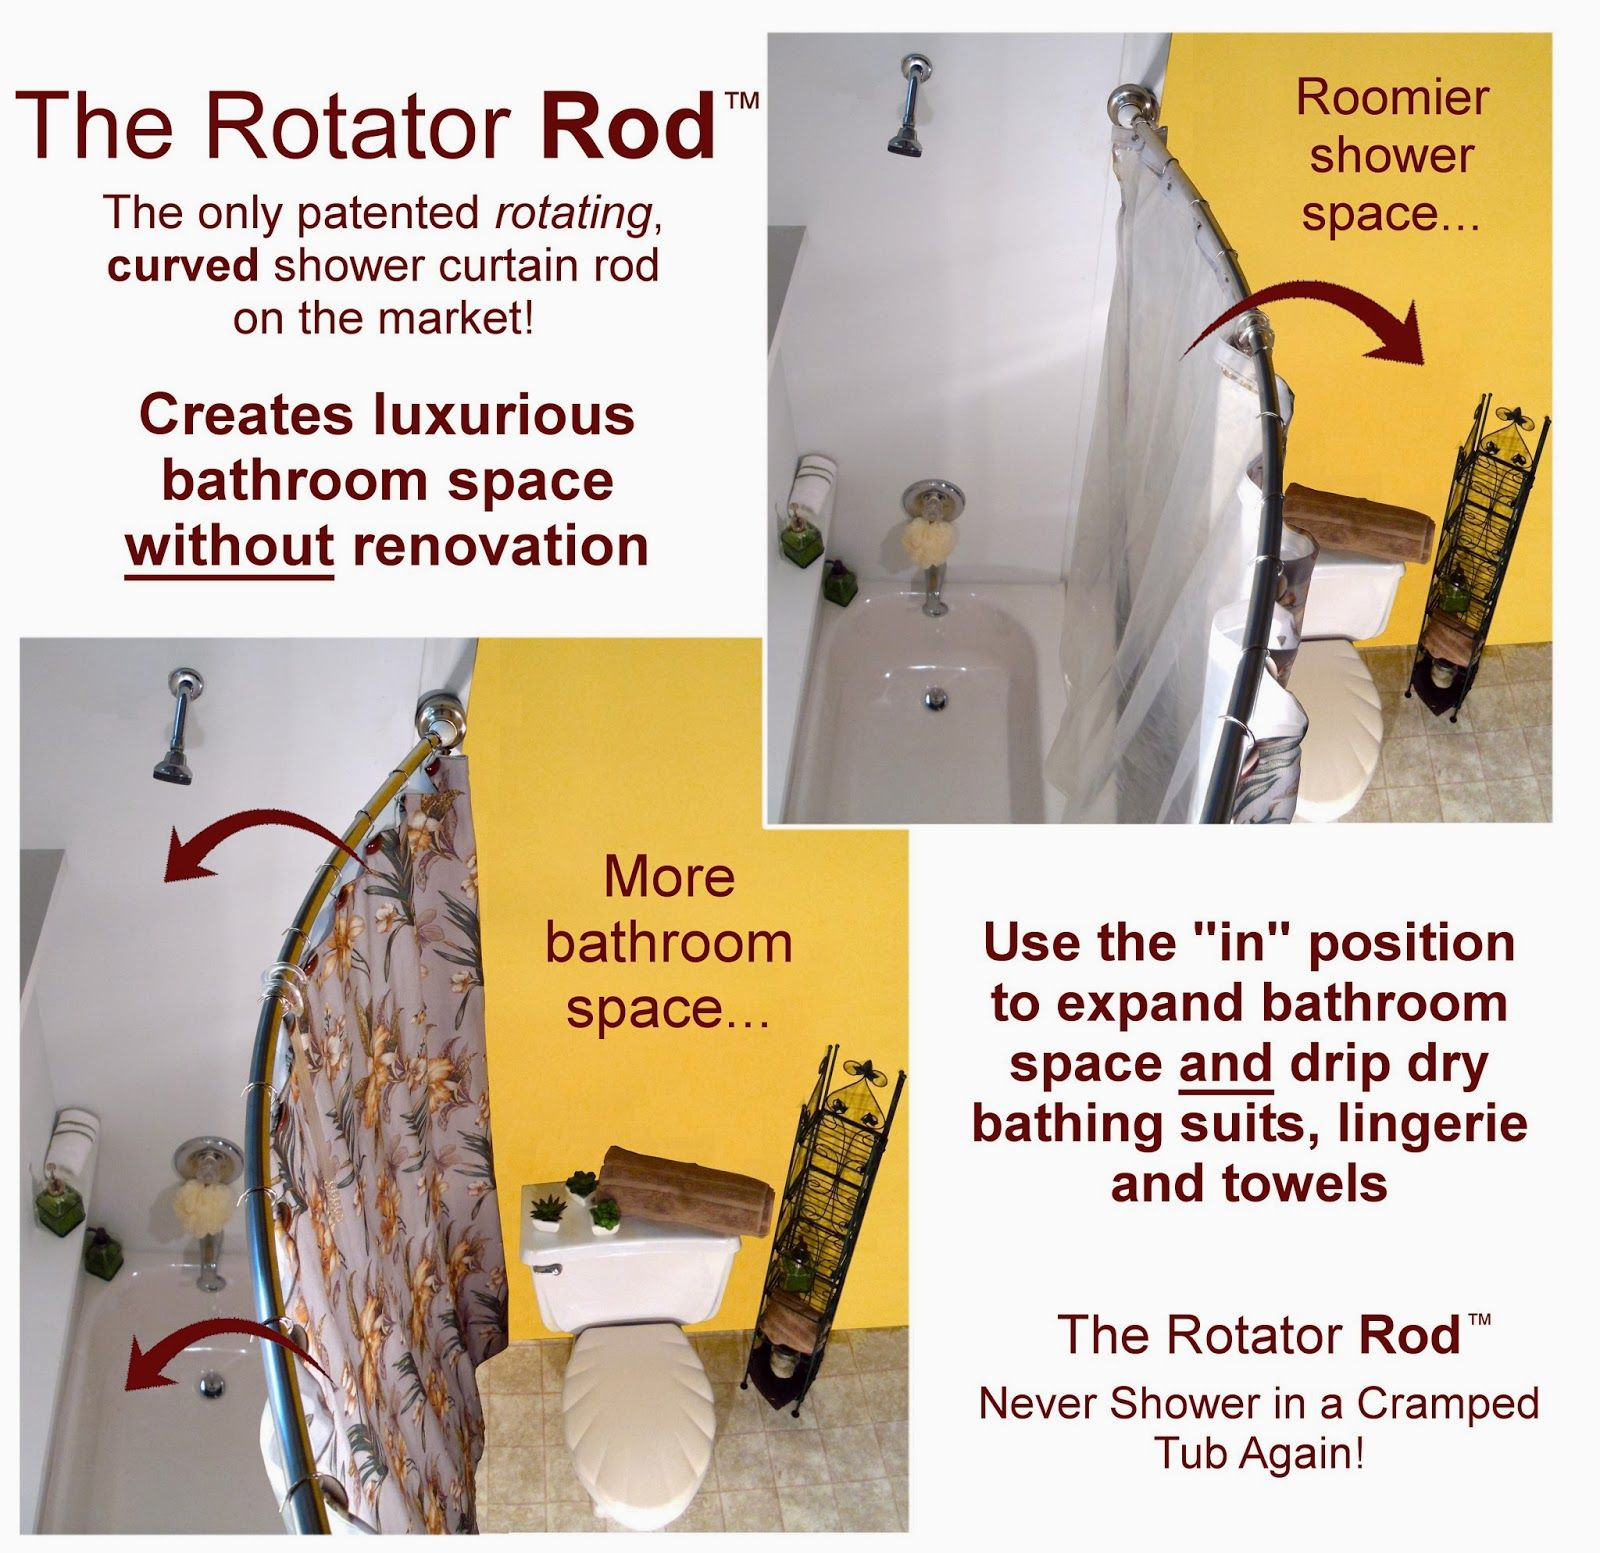 Curved Shower Curtain Rods Bring Luxury To Small Bathrooms Shower Curtain Rods Curtain Rods Shower Rod